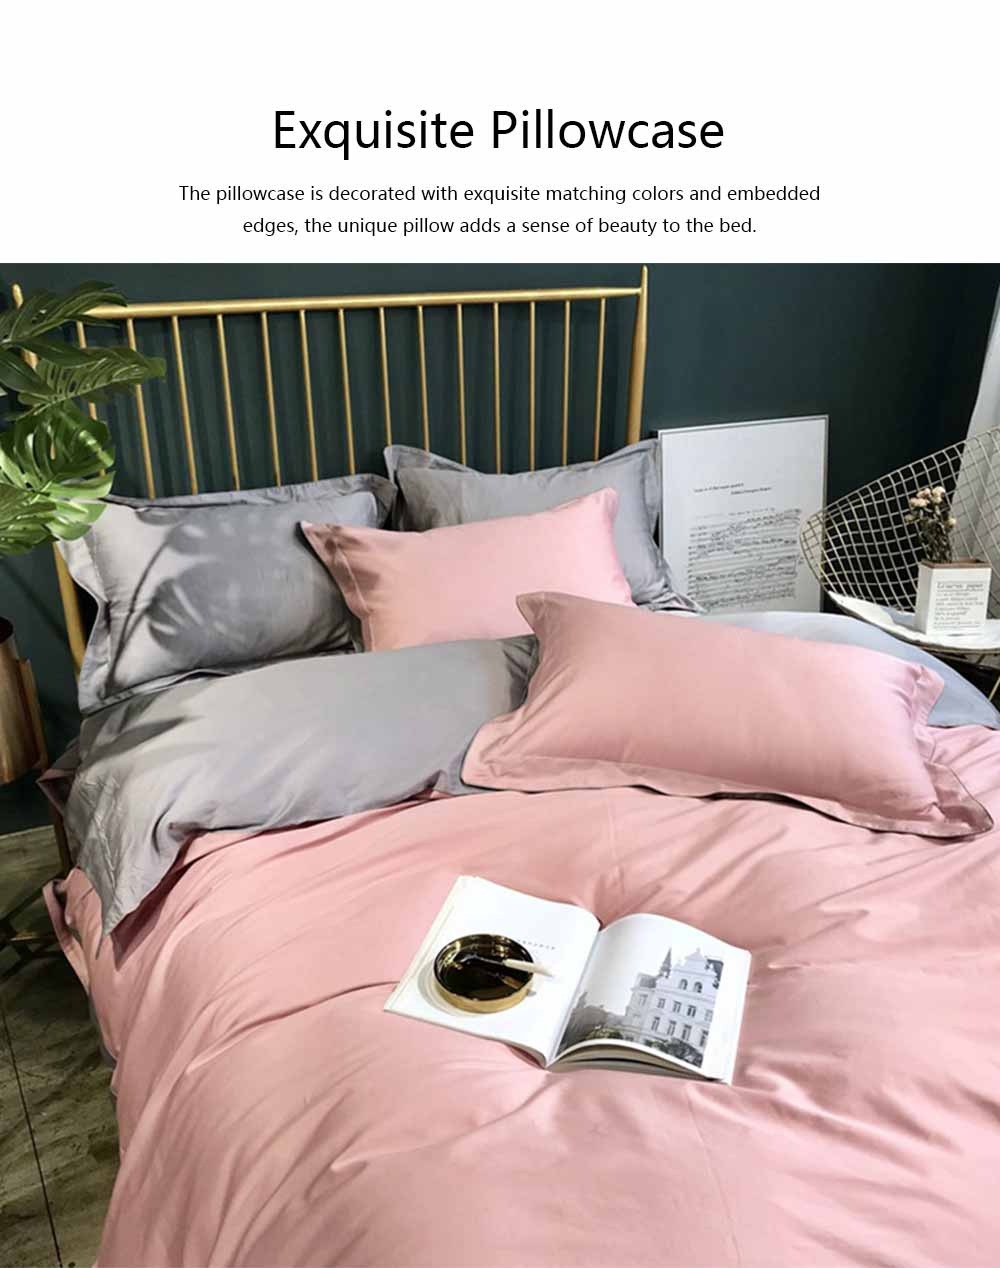 Four-piece Bedding Set Cotton Material, Flat-sheet Pillow Soft Bed Sheet Fitted-sheet Breathable Bedding Bag Comfortable Quilt 5